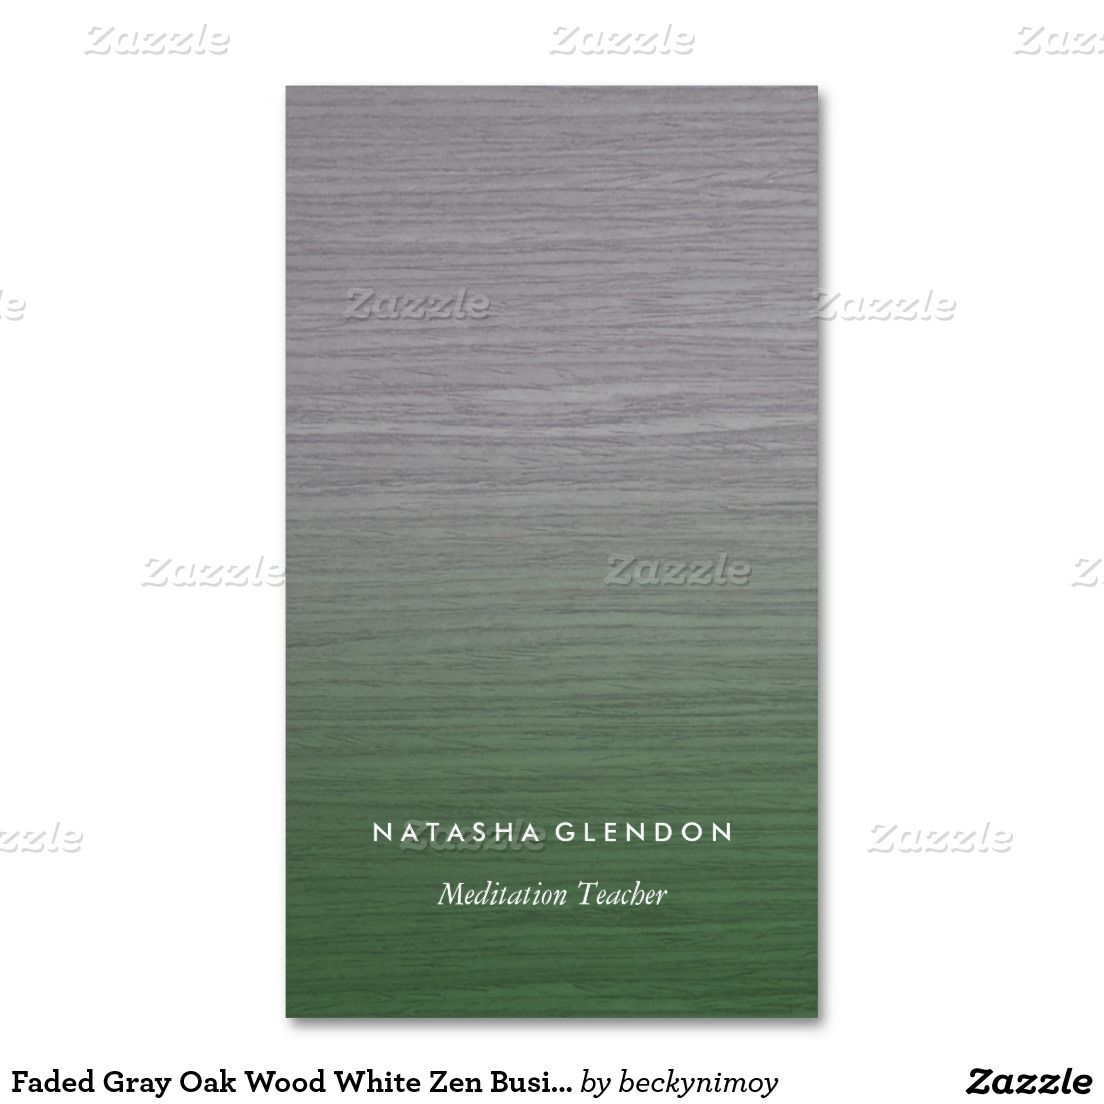 Faded Gray Oak Wood White Zen Business Card | Meditation Business ...